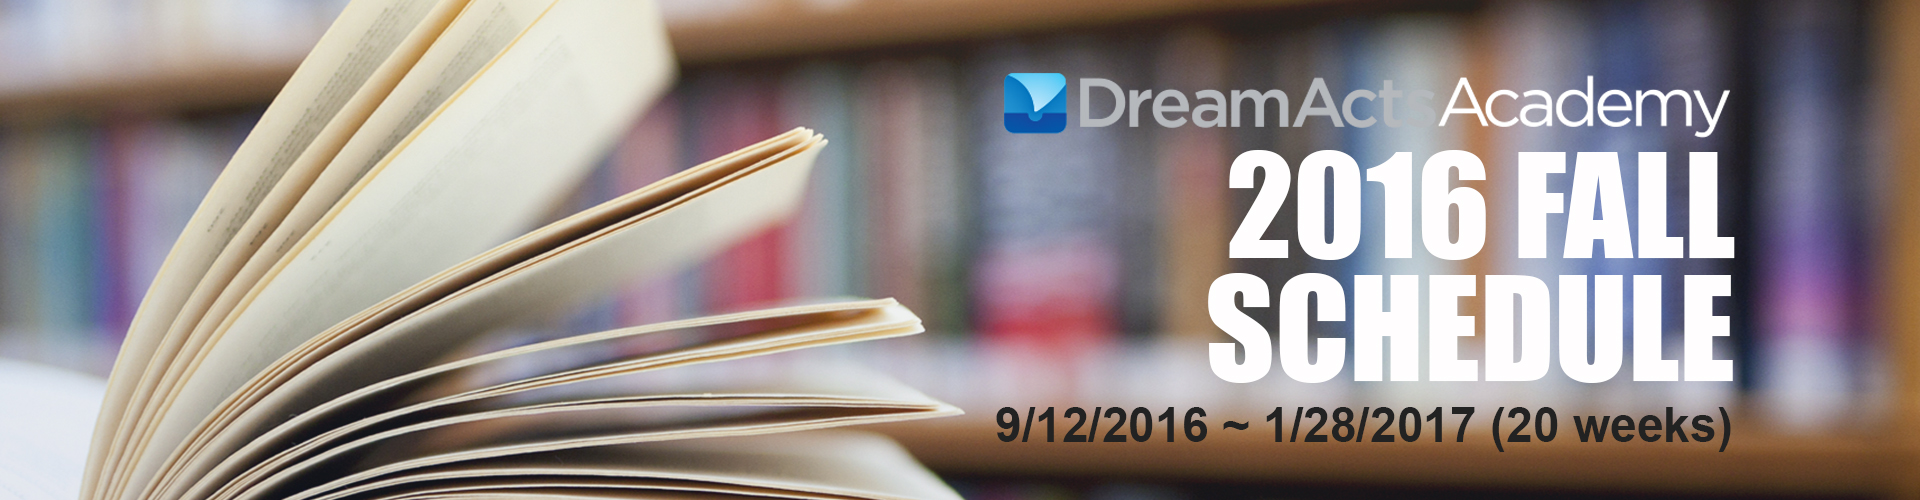 dream acts academy education